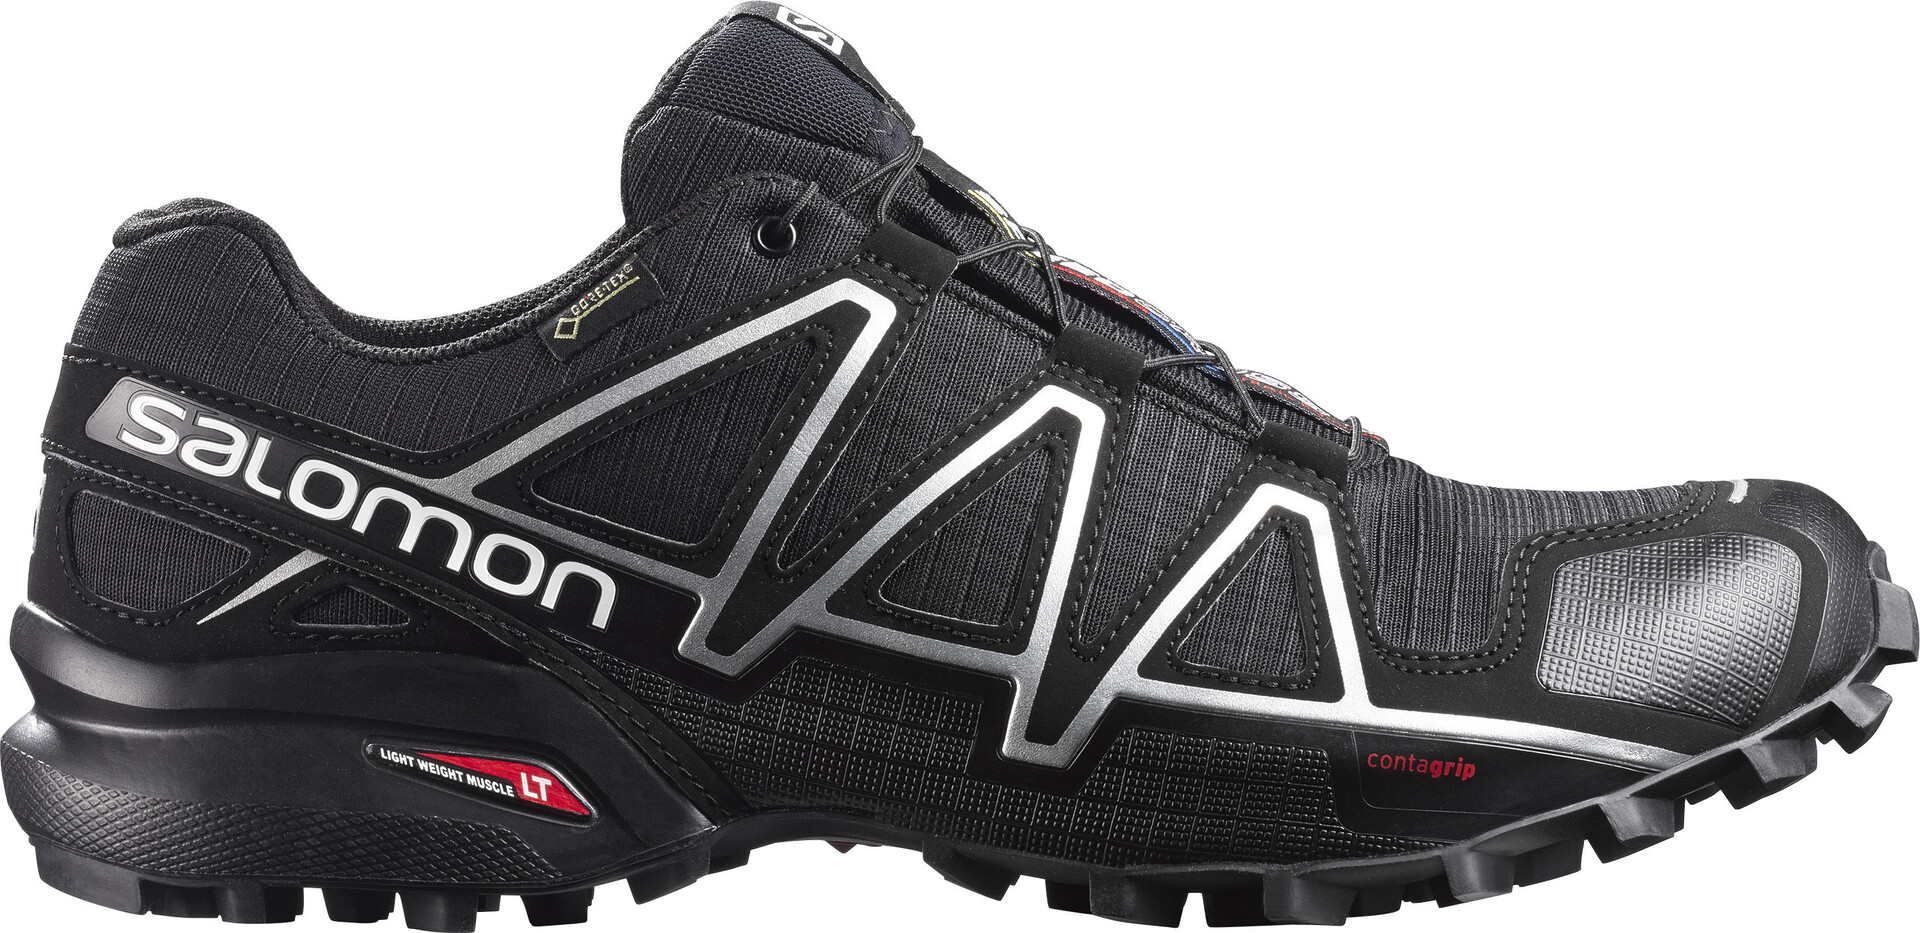 best outlet boutique cheap for discount Acquista scarpe mtb salomon - OFF39% sconti